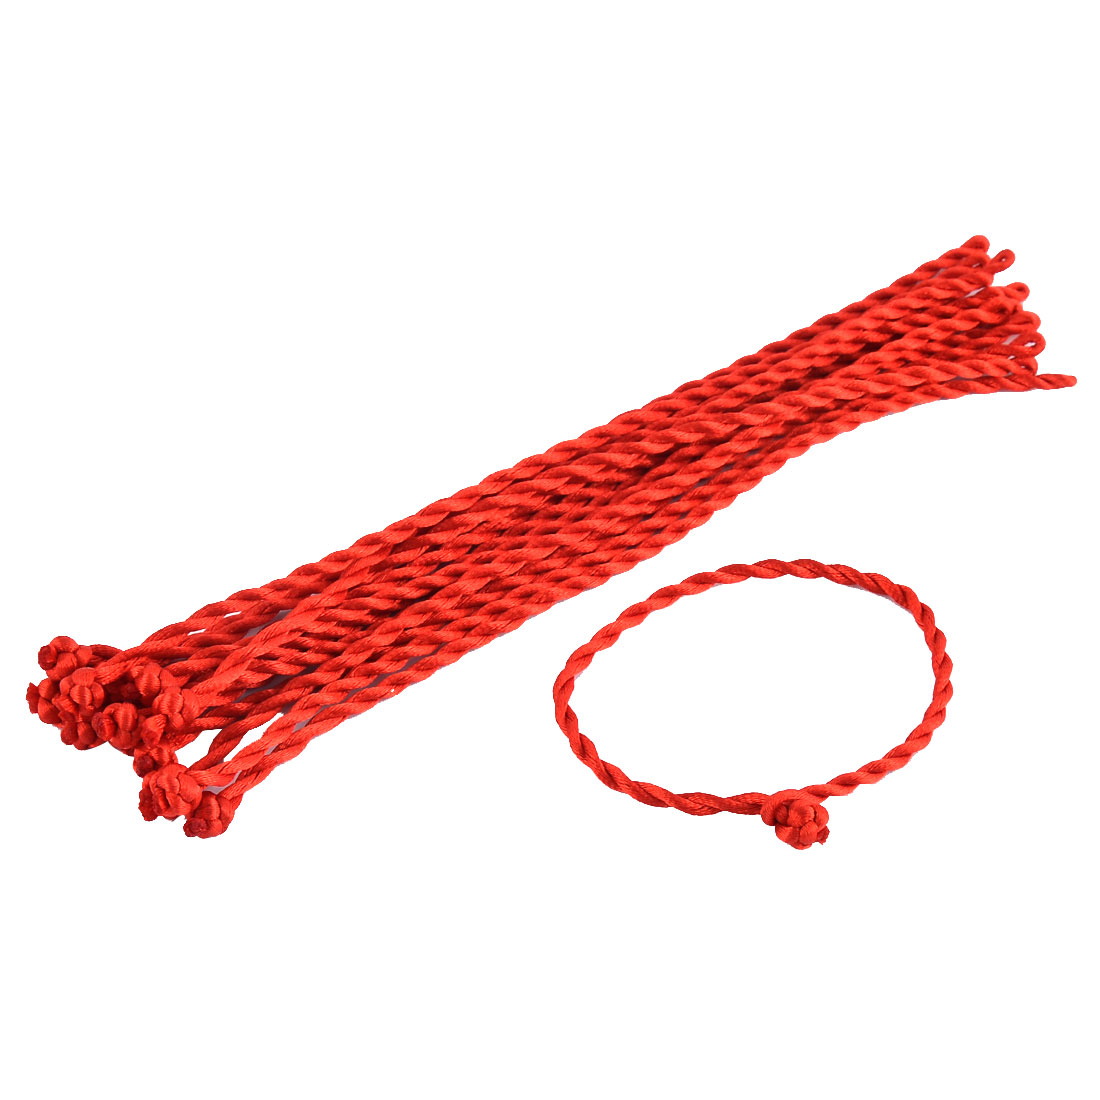 Lady Nylon Handmade Braided String Wrist Neck Bracelet Bangle Rope Red 15pcs